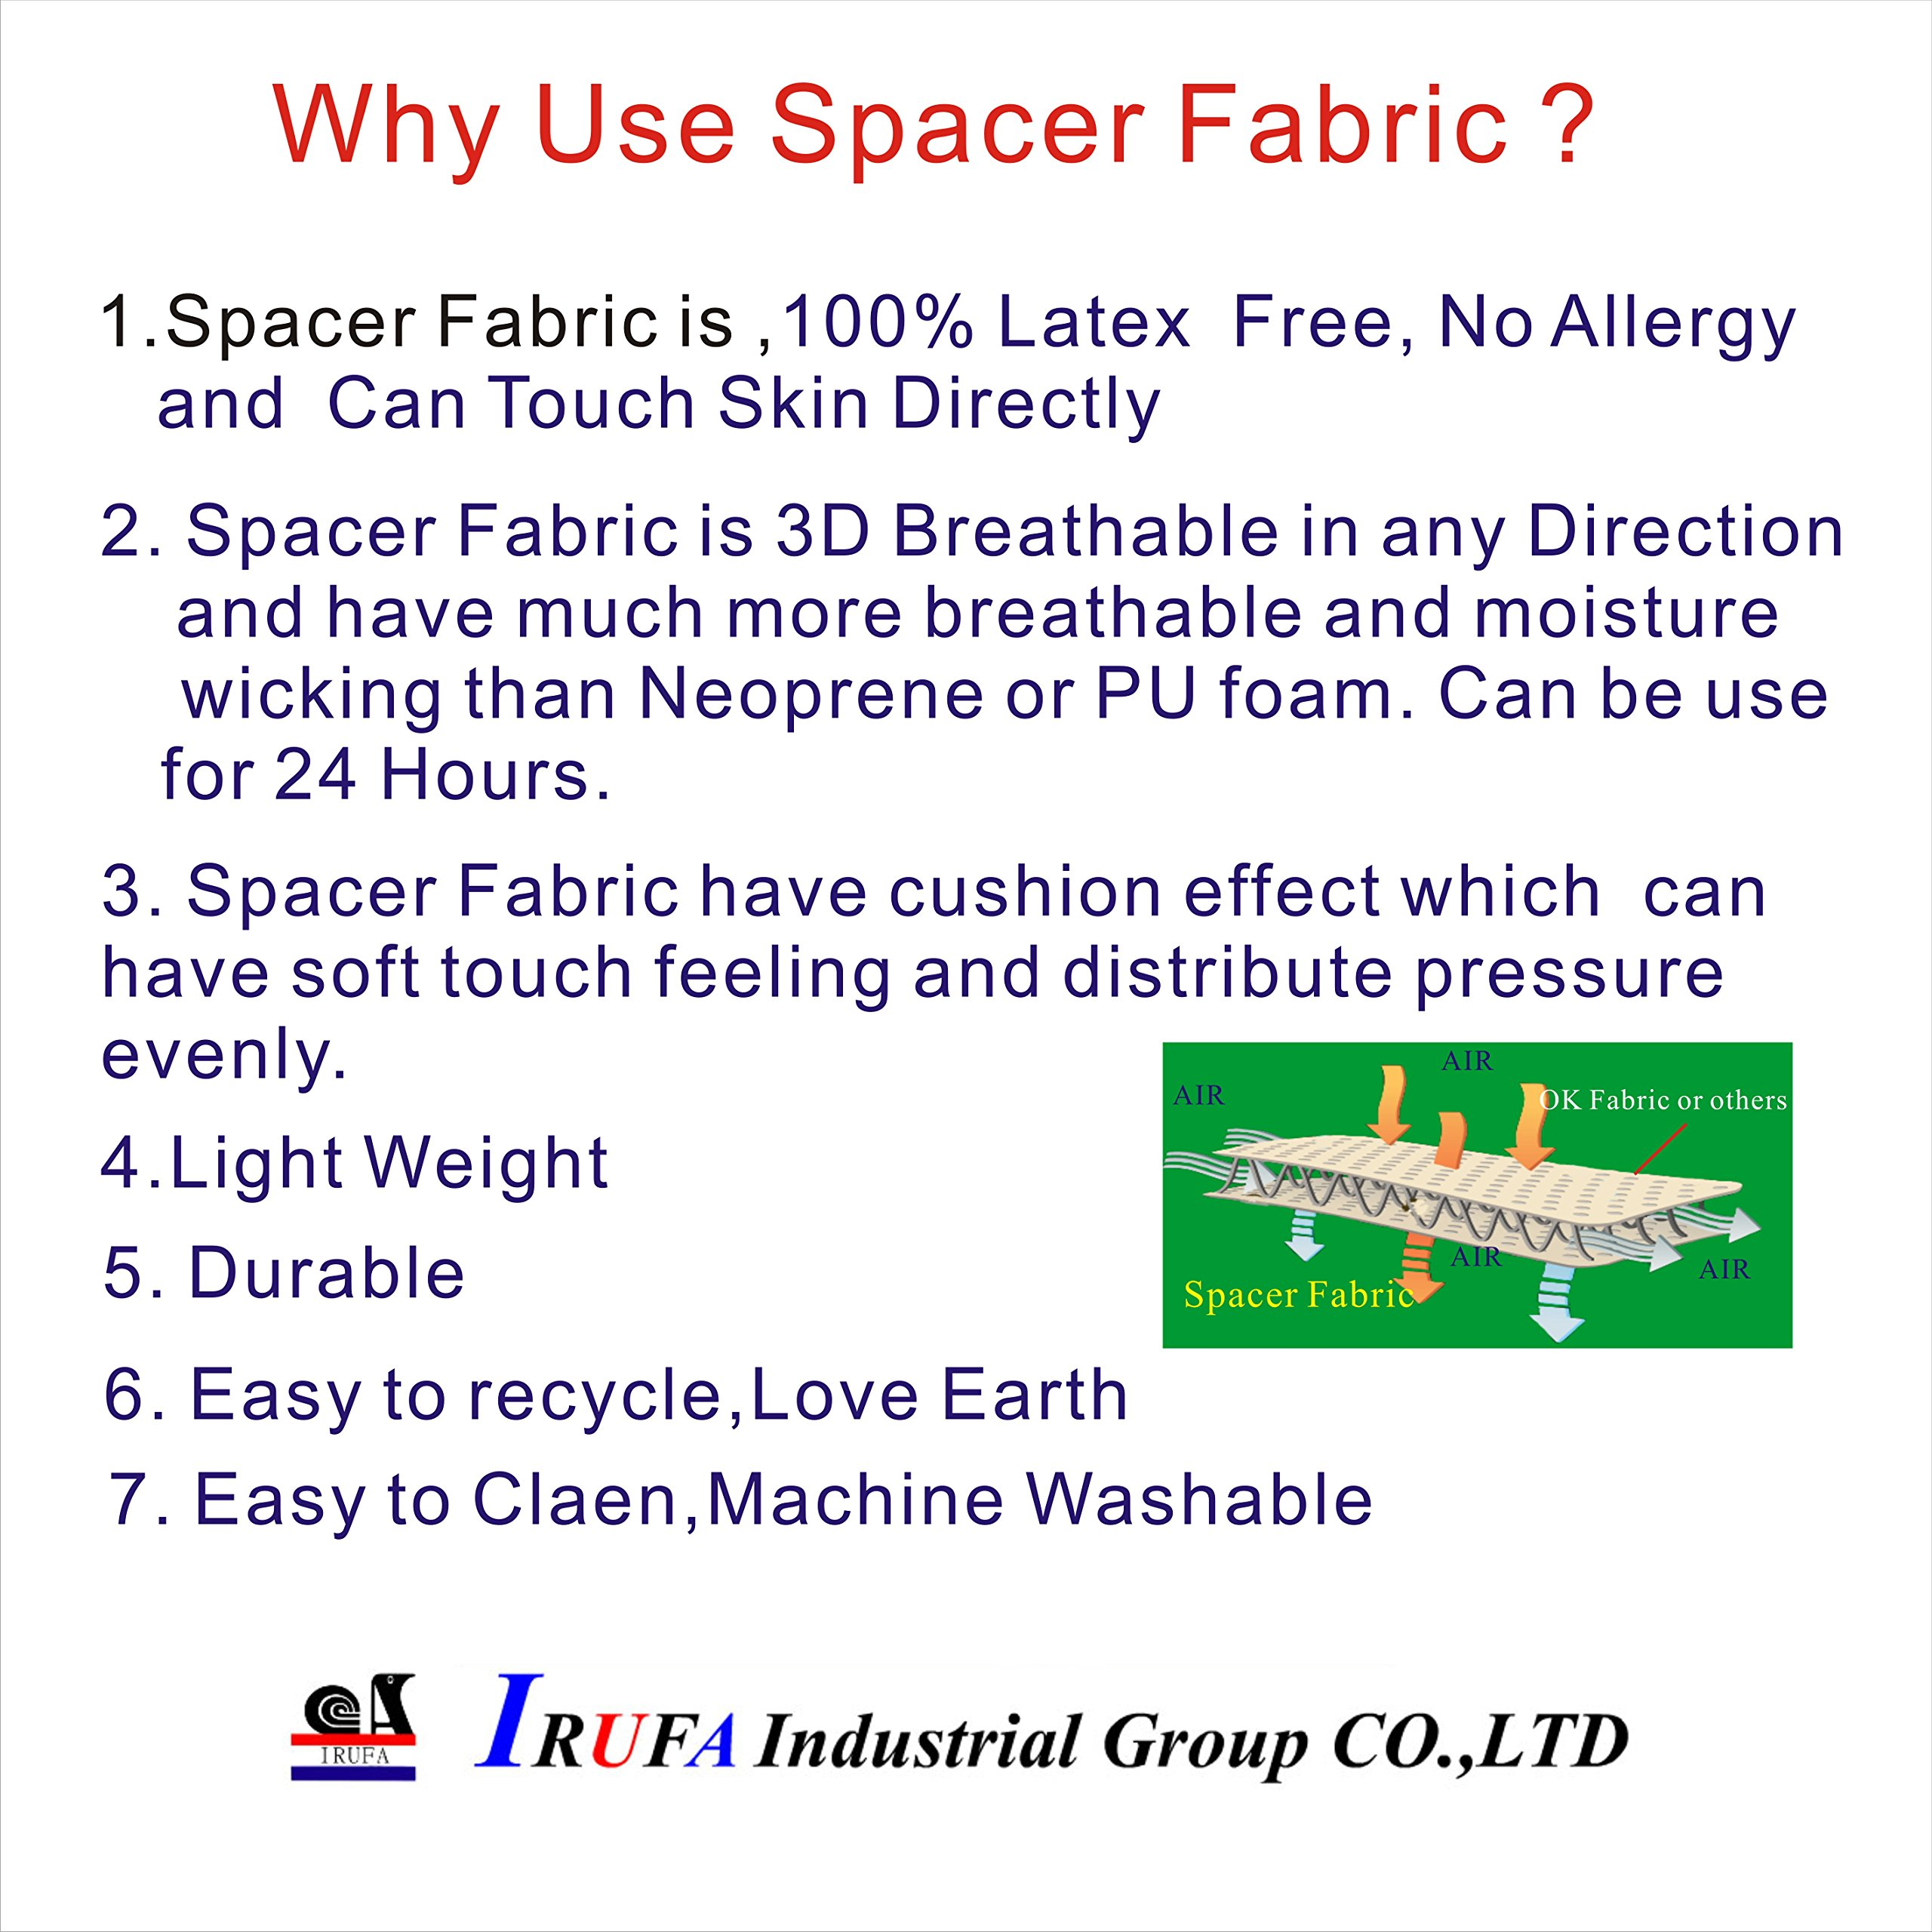 IRUFA,WR-OS-17,3D Breathable Spacer Fabric Wrist Brace, for TFCC Tear- Triangular Fibrocartilage Complex Injuries, Ulnar Sided Wrist Pain, Weight Bearing Strain, One PCS (Spacer Fabric) by IRUFA (Image #7)